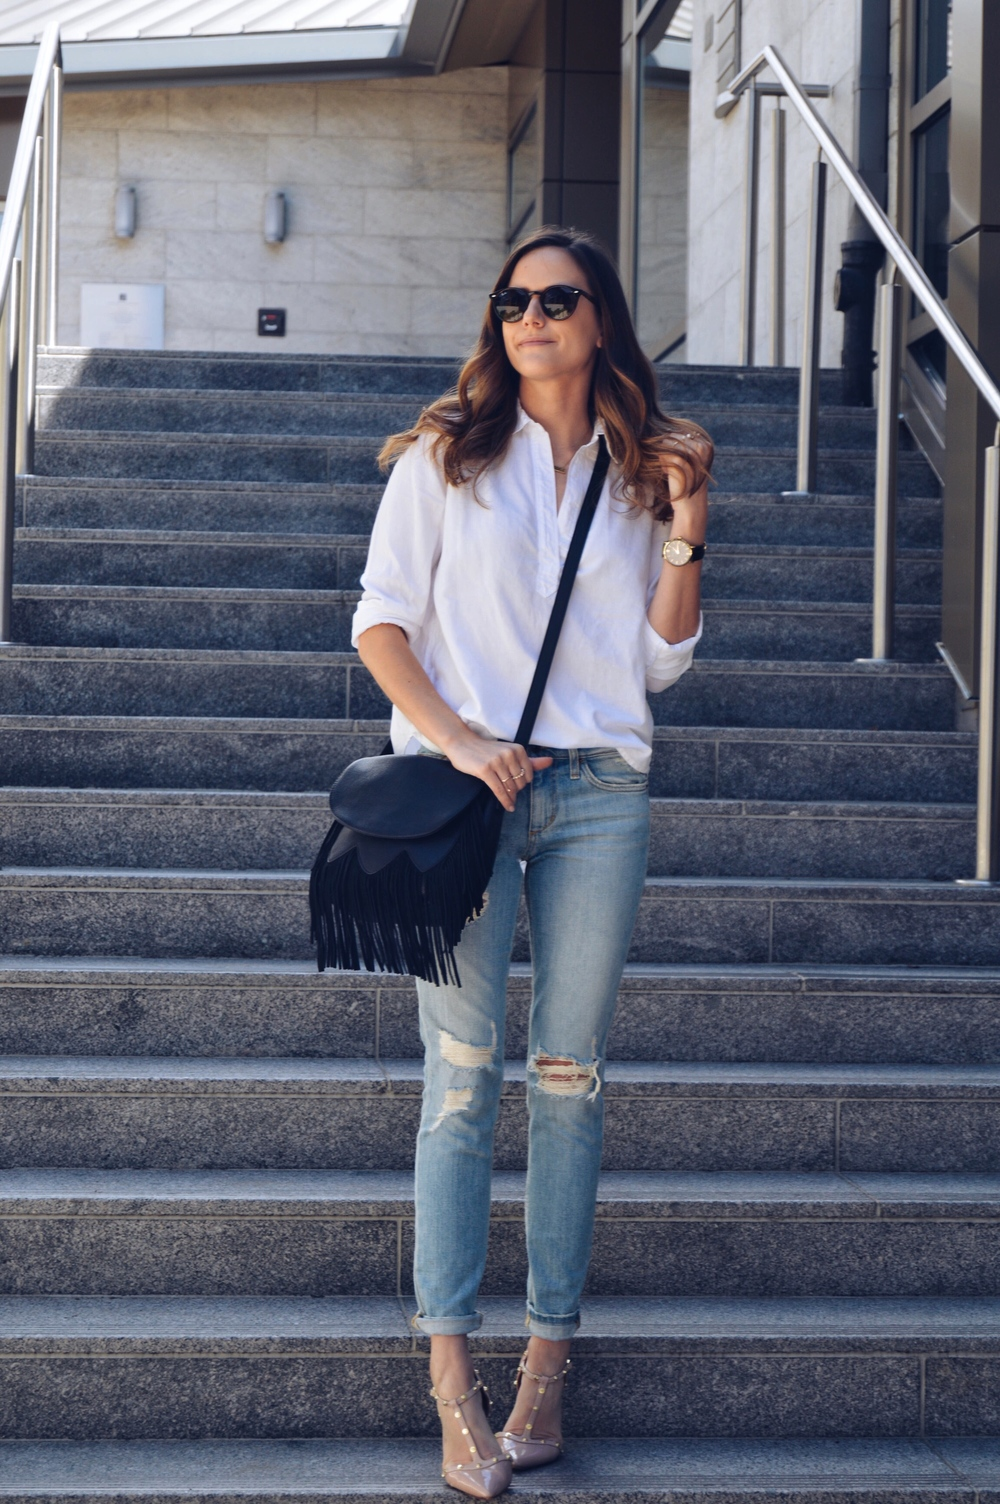 Shop the Look Below. Top: c/o  Lou & Grey . Jeans:  Joe's . Shoes:  Nordstrom . Bag: c/o  Sole Society . Rings: c/o  BaubleBar  (see all below). Sunglasses:  Ray-Ban . Watch: Marc Bale c/o  The Peach Box